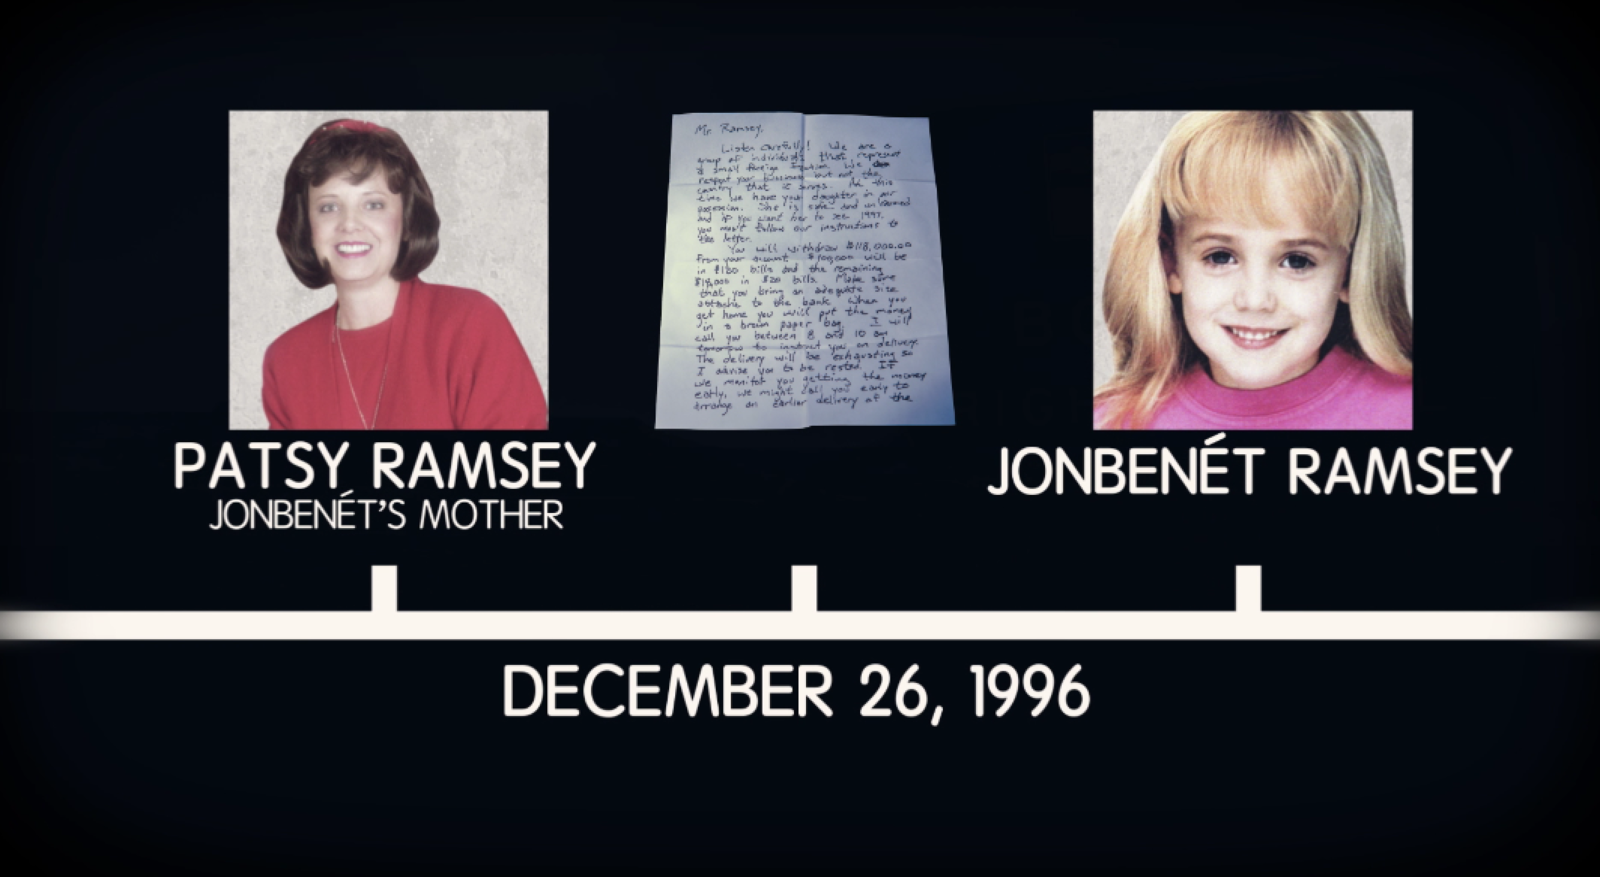 a question on the brutal murder of jon benet